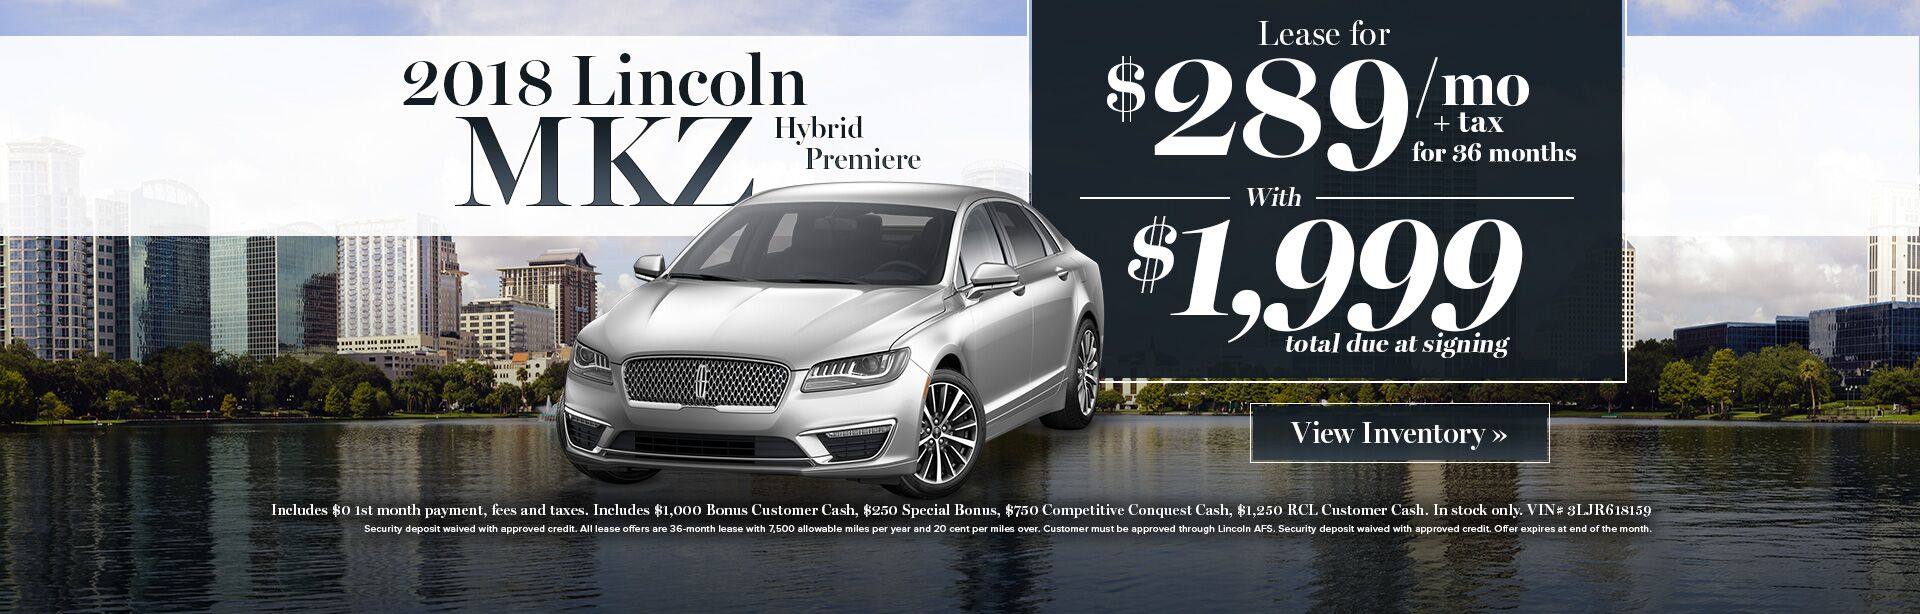 2018 Lincoln MKZ Hybrid lease special